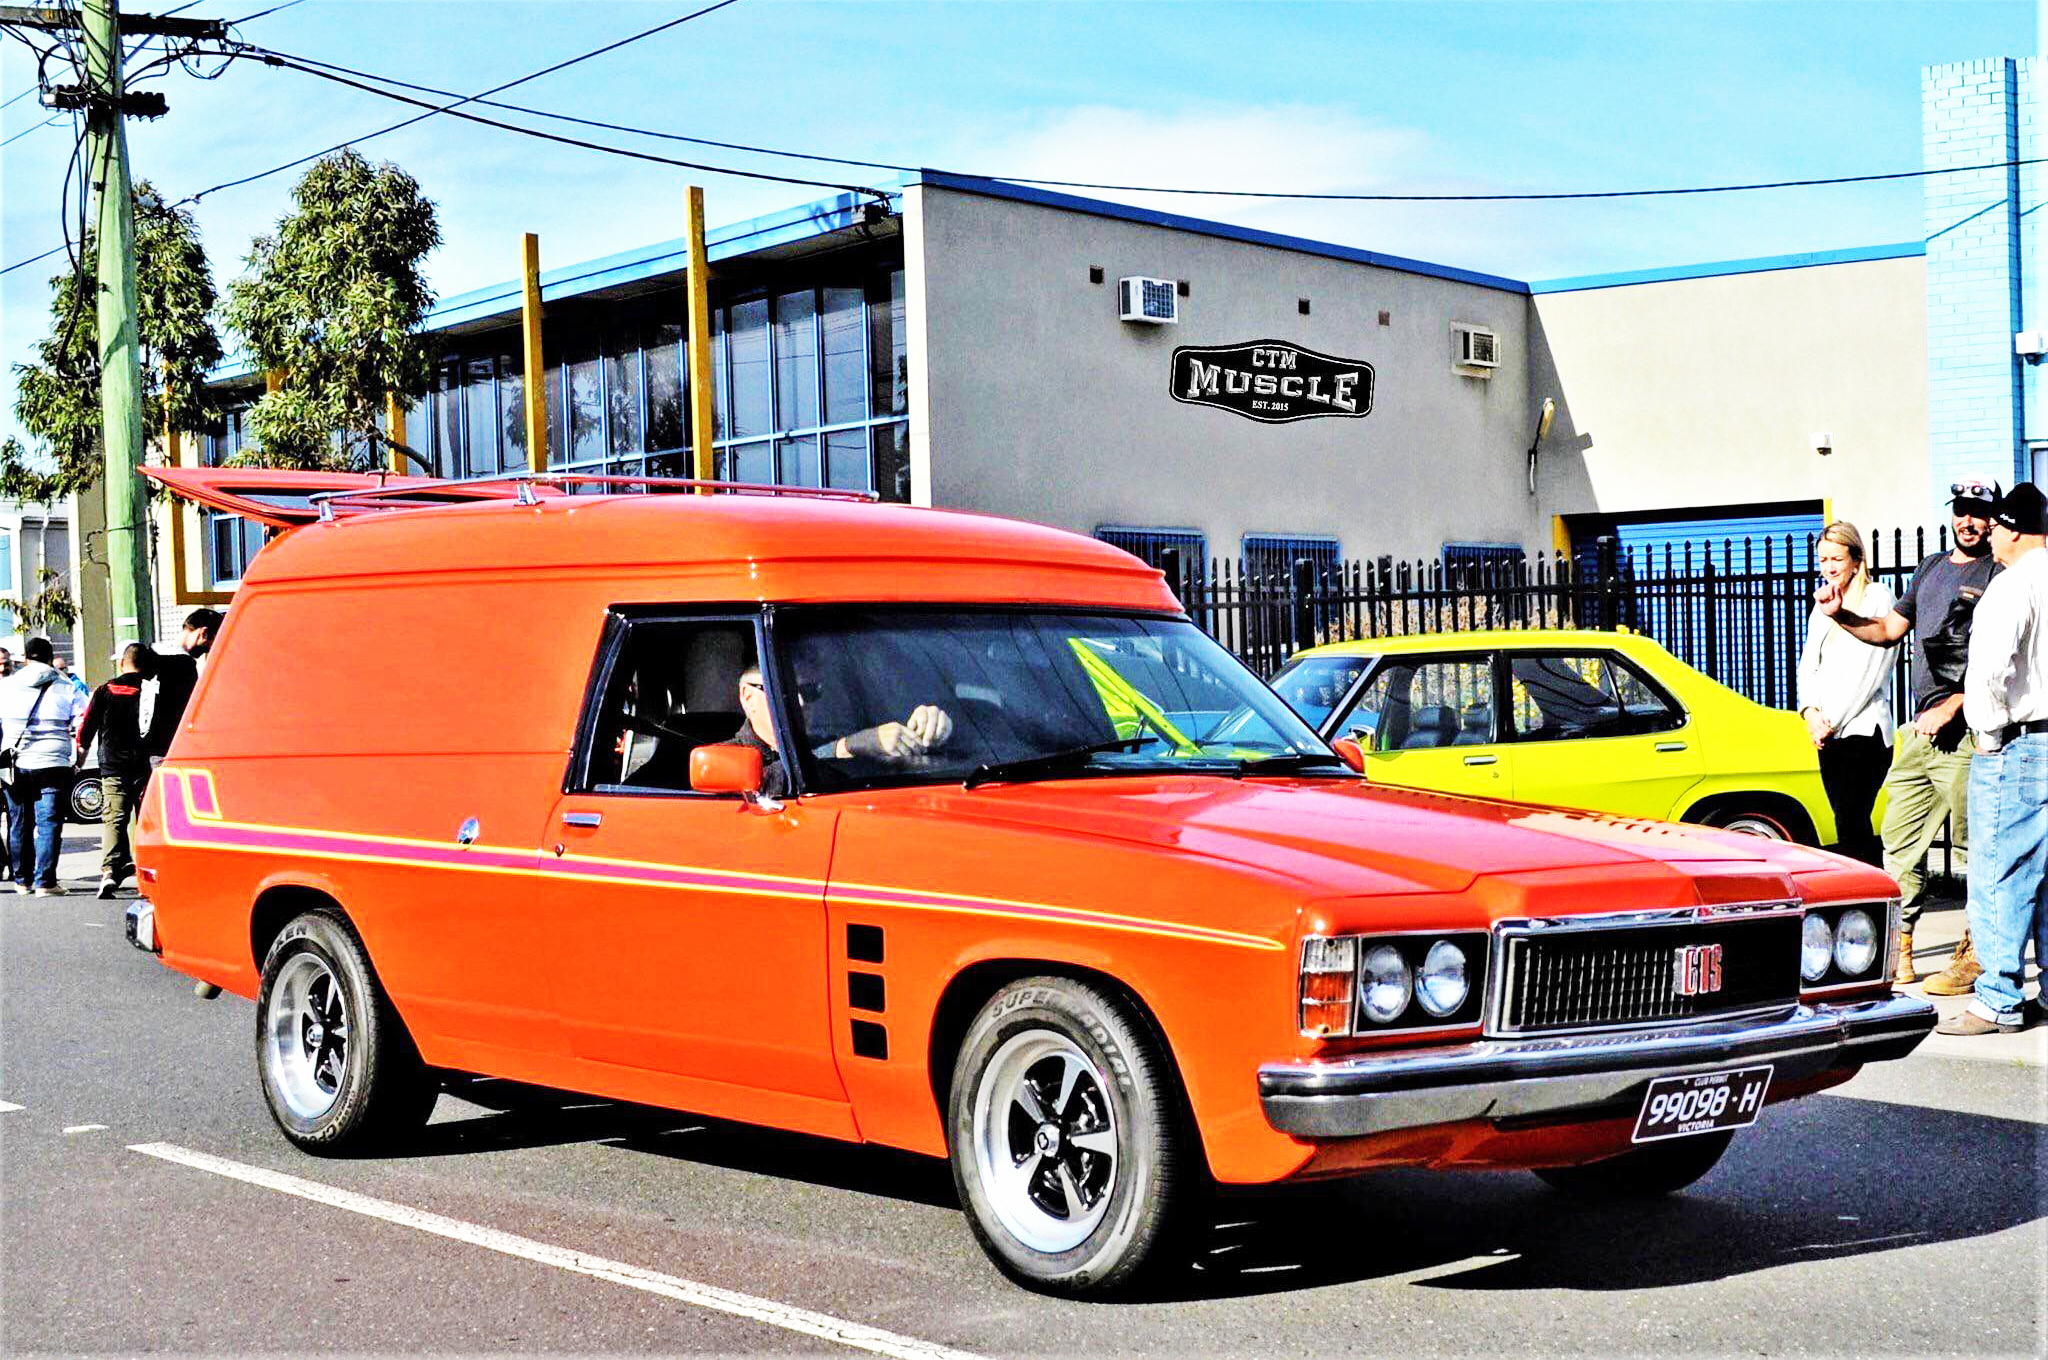 Holden Panel Van fitted with CTM Muscle GTS Sprint wheels